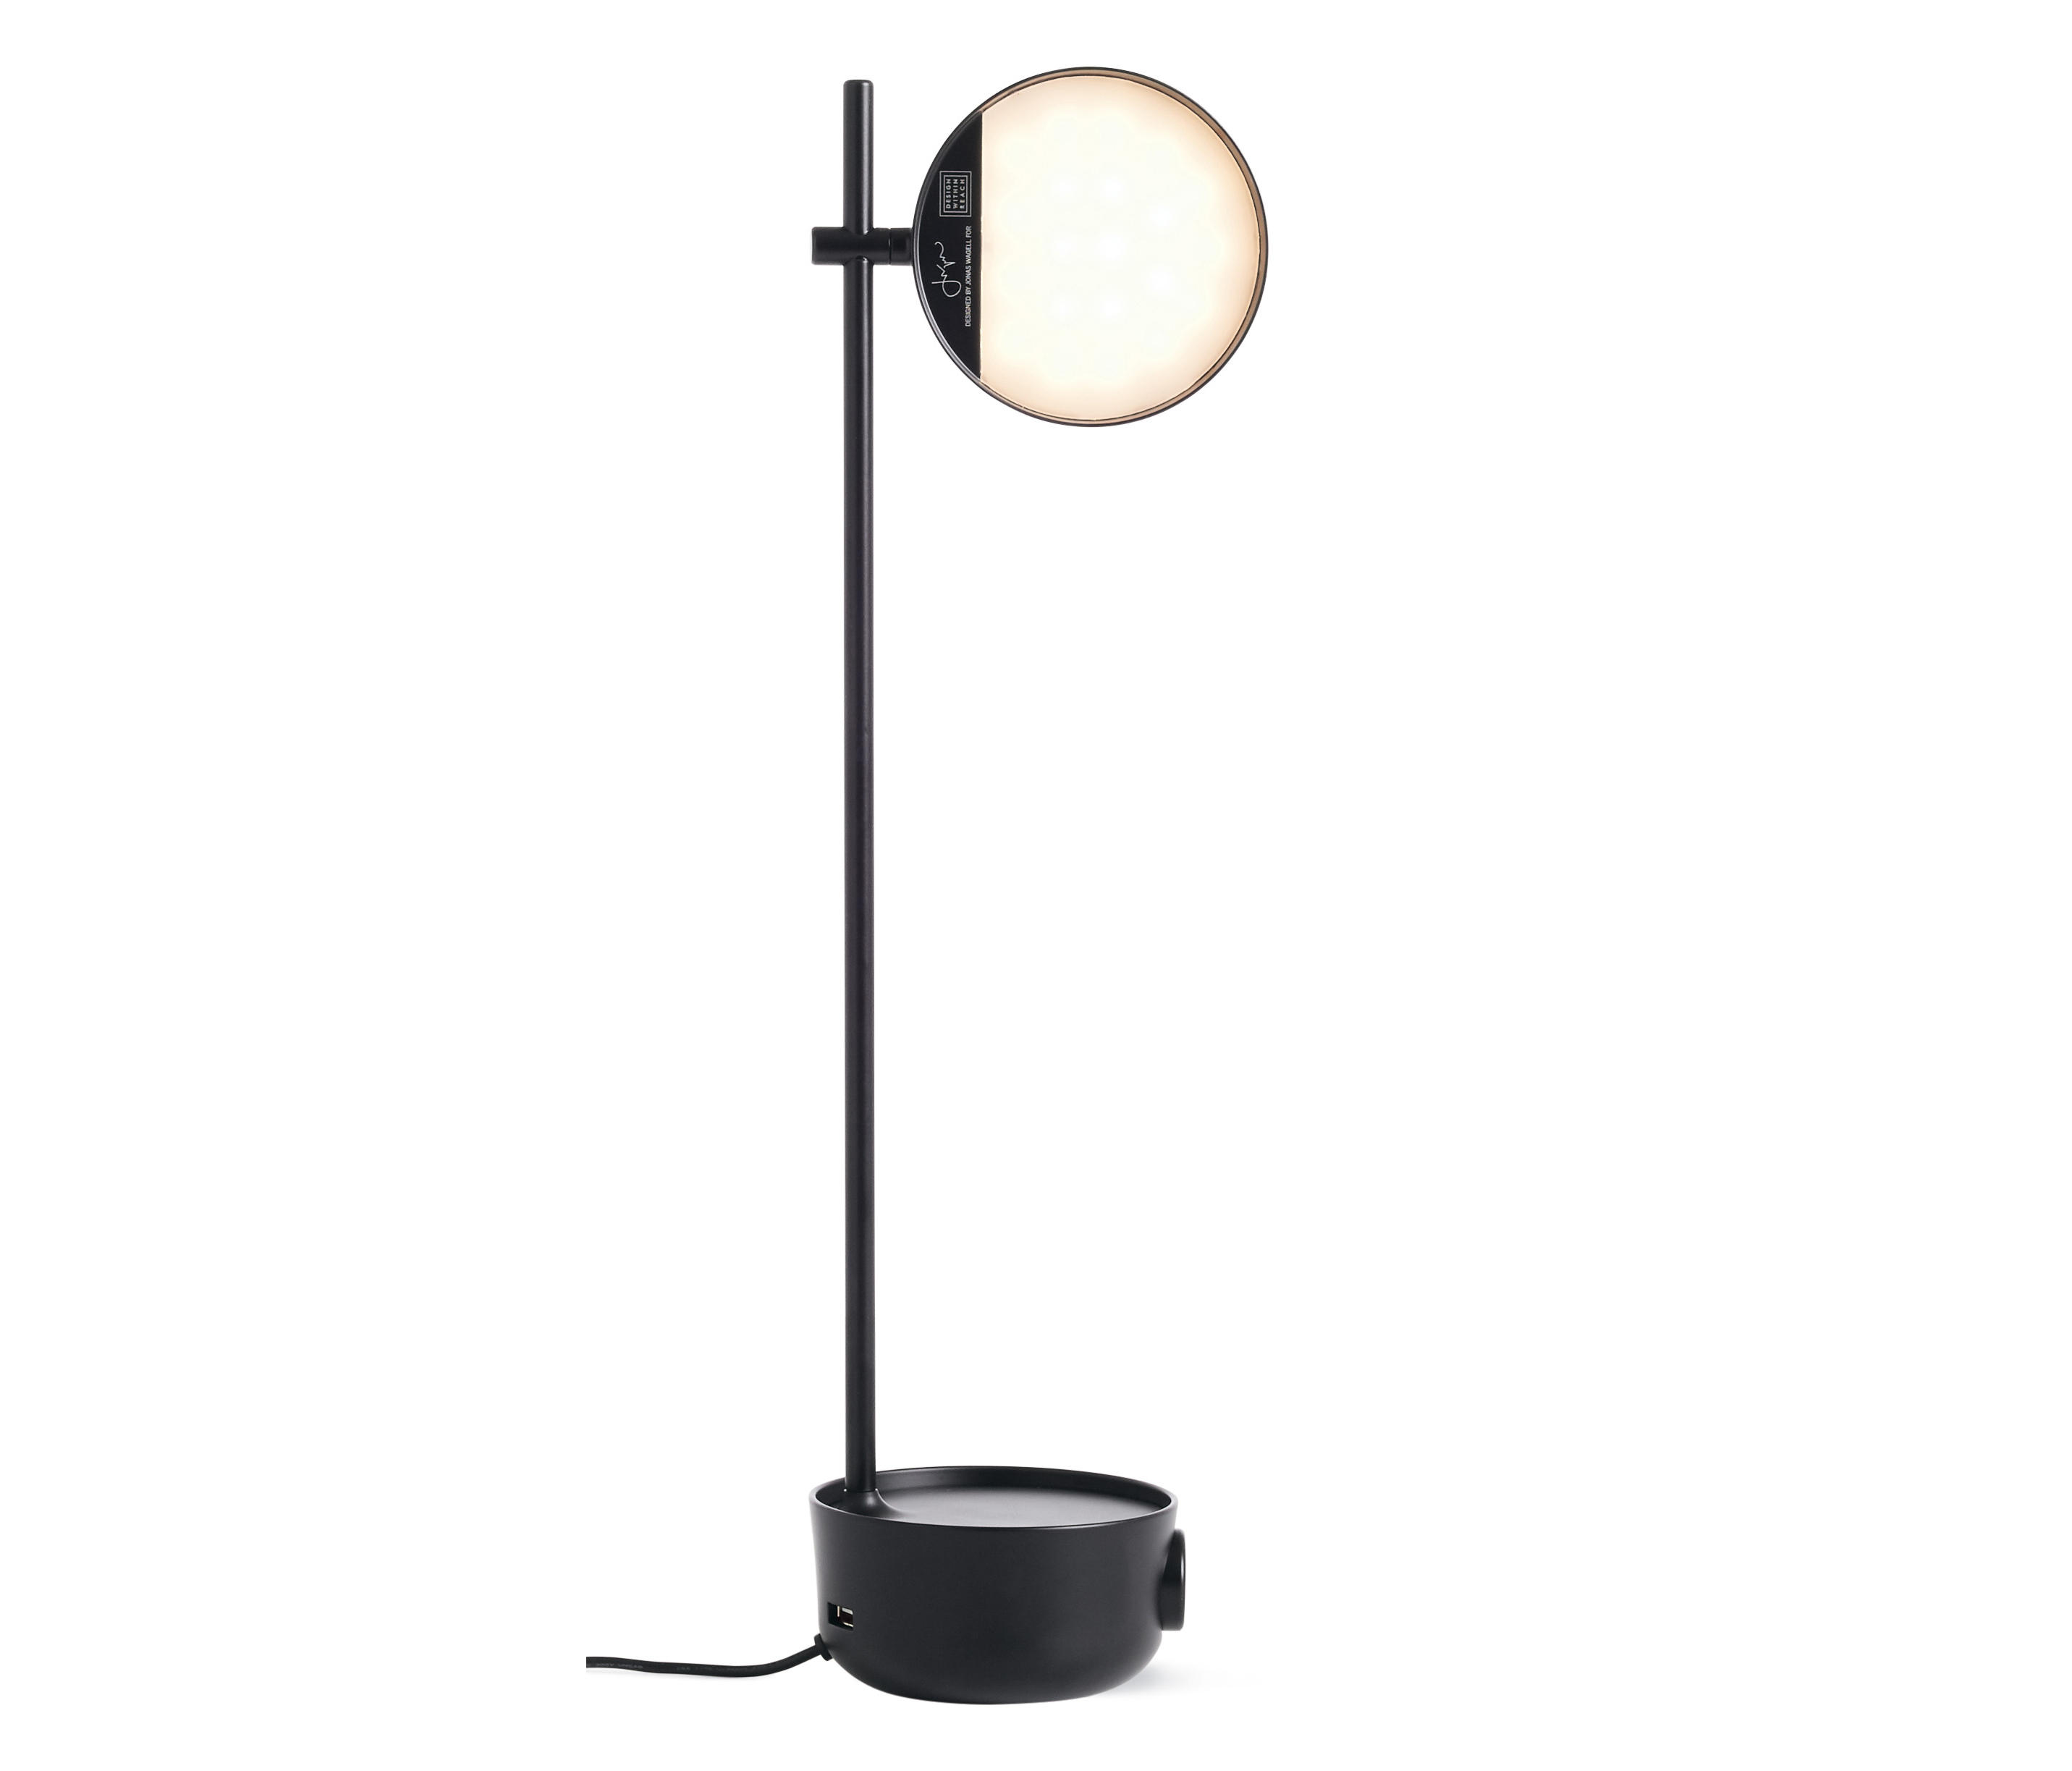 design within reach lighting. Focal LED Lamp With USB Port By Design Within Reach | General Lighting R